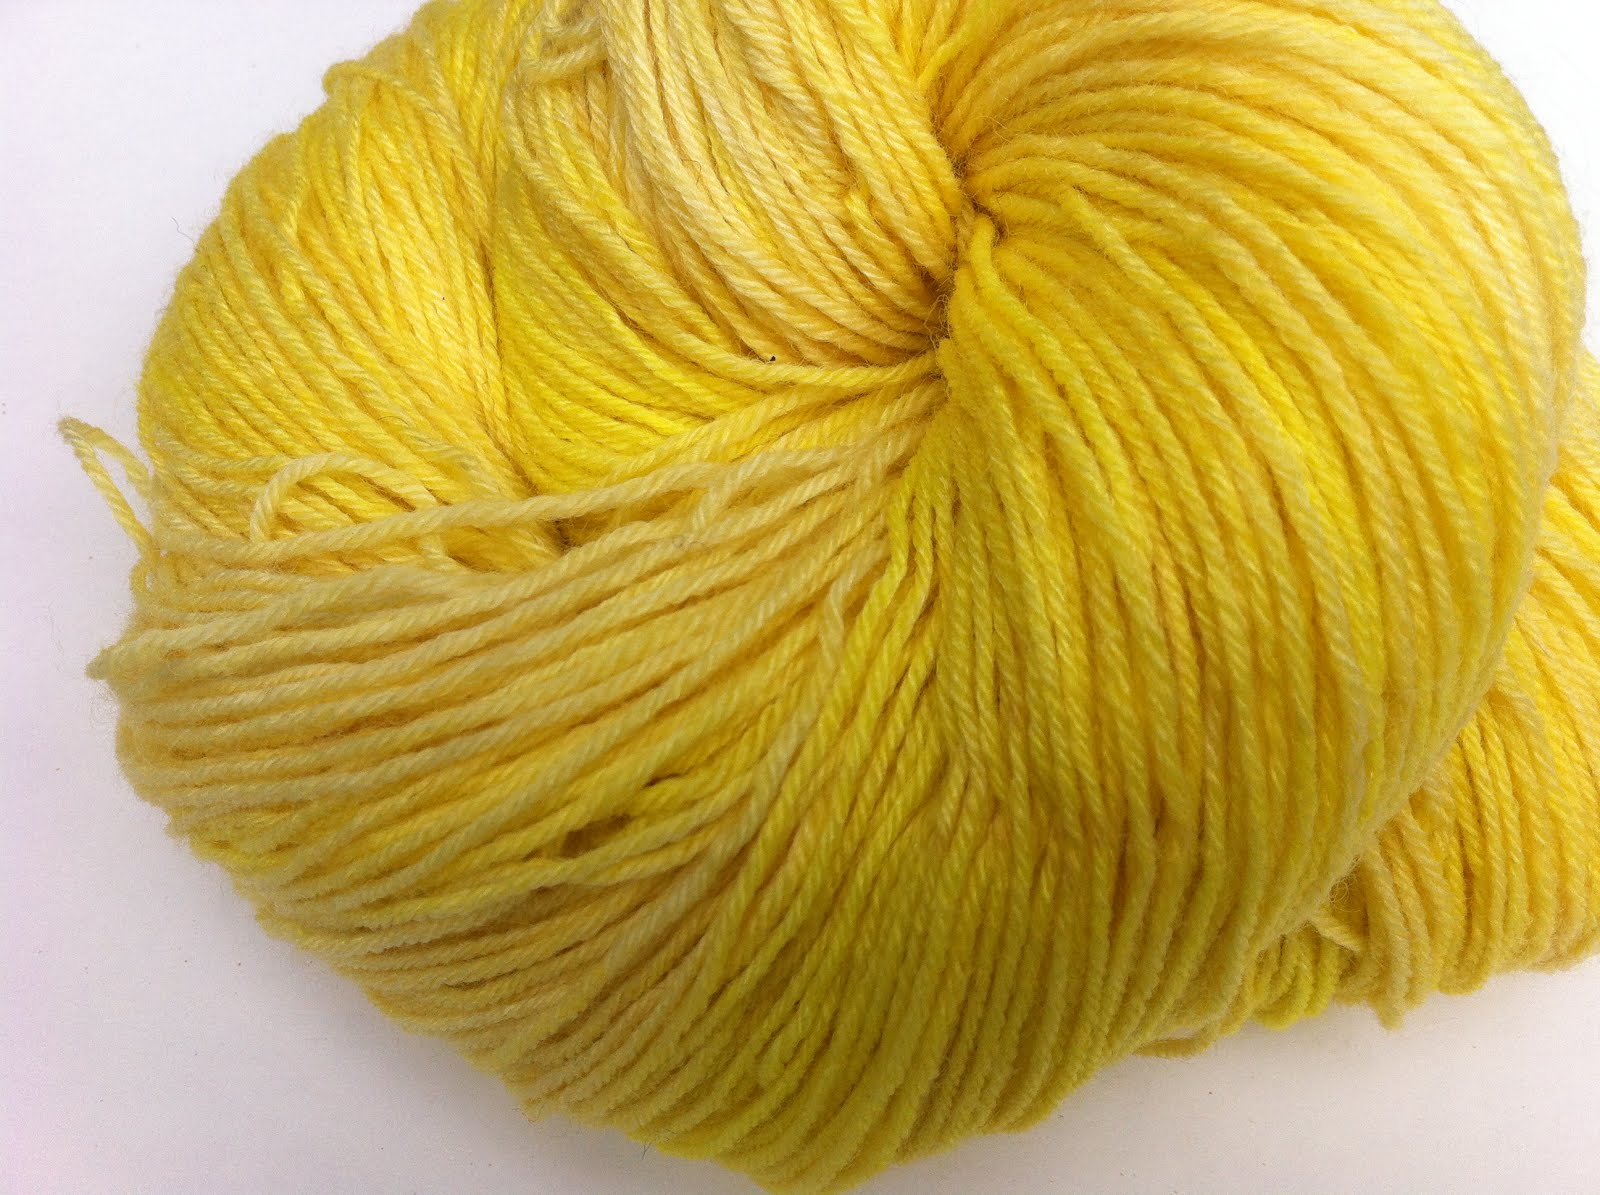 Calendula and Weld both yield a bright sunny yellow with an alum mordant.  I have also top dyed this beautiful color with indigo to get a fabulous yarn with greens, blues, and purples.